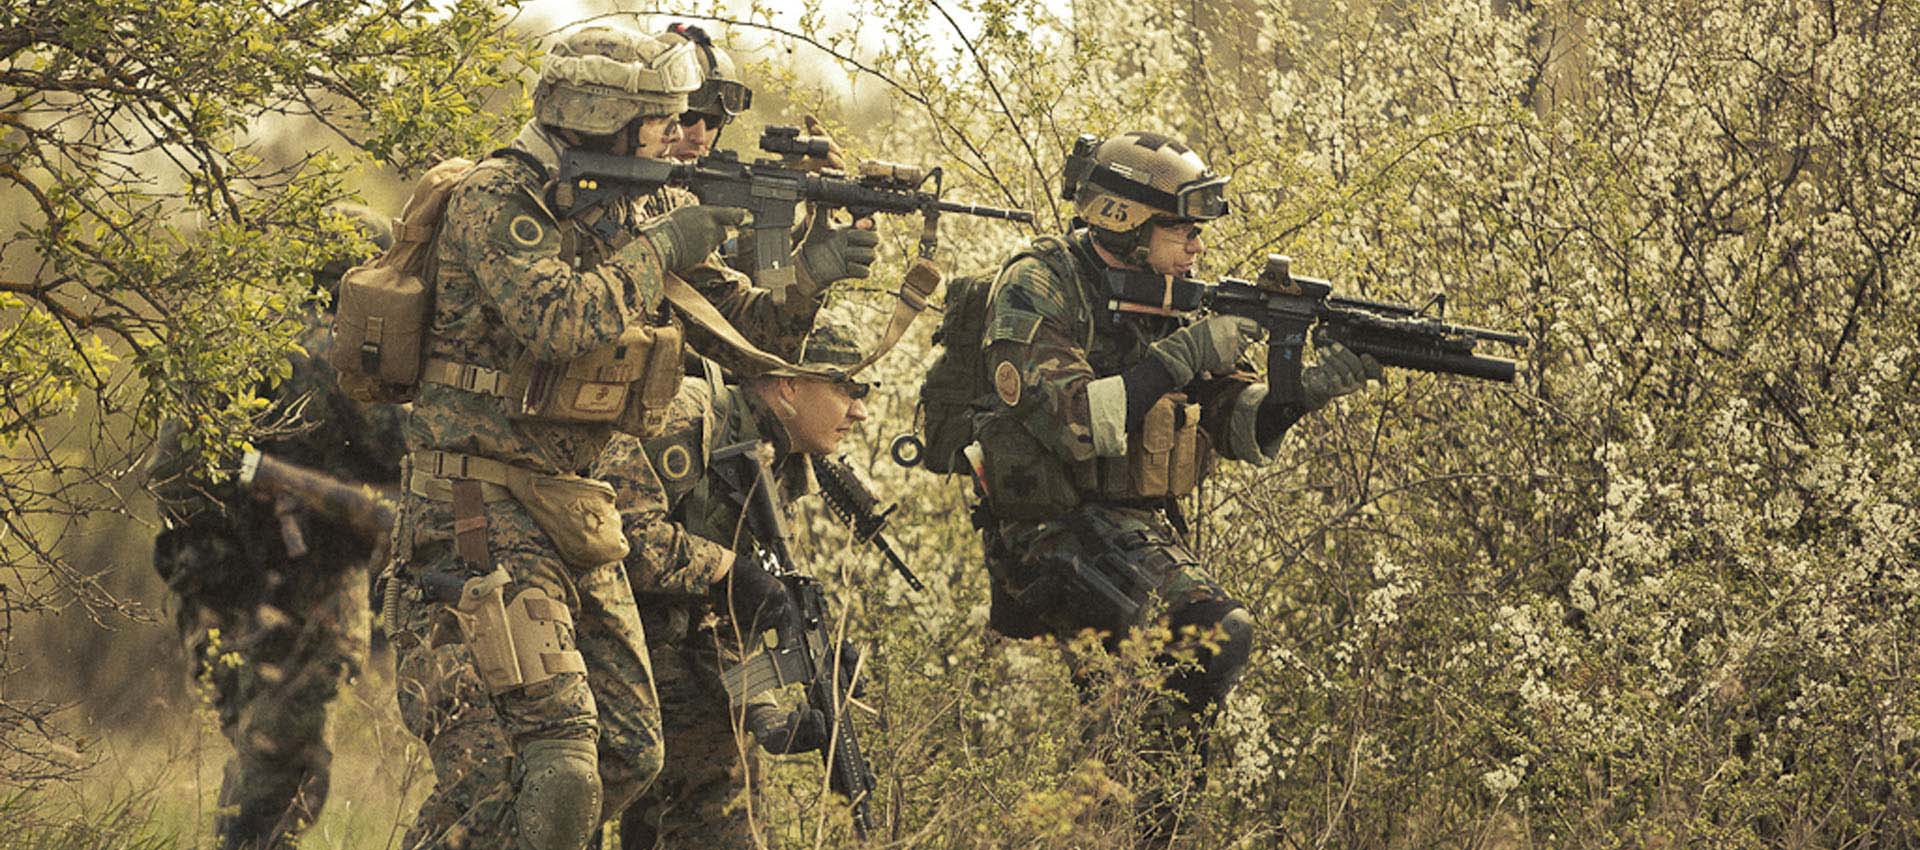 1920x850 > Airsoft Wallpapers